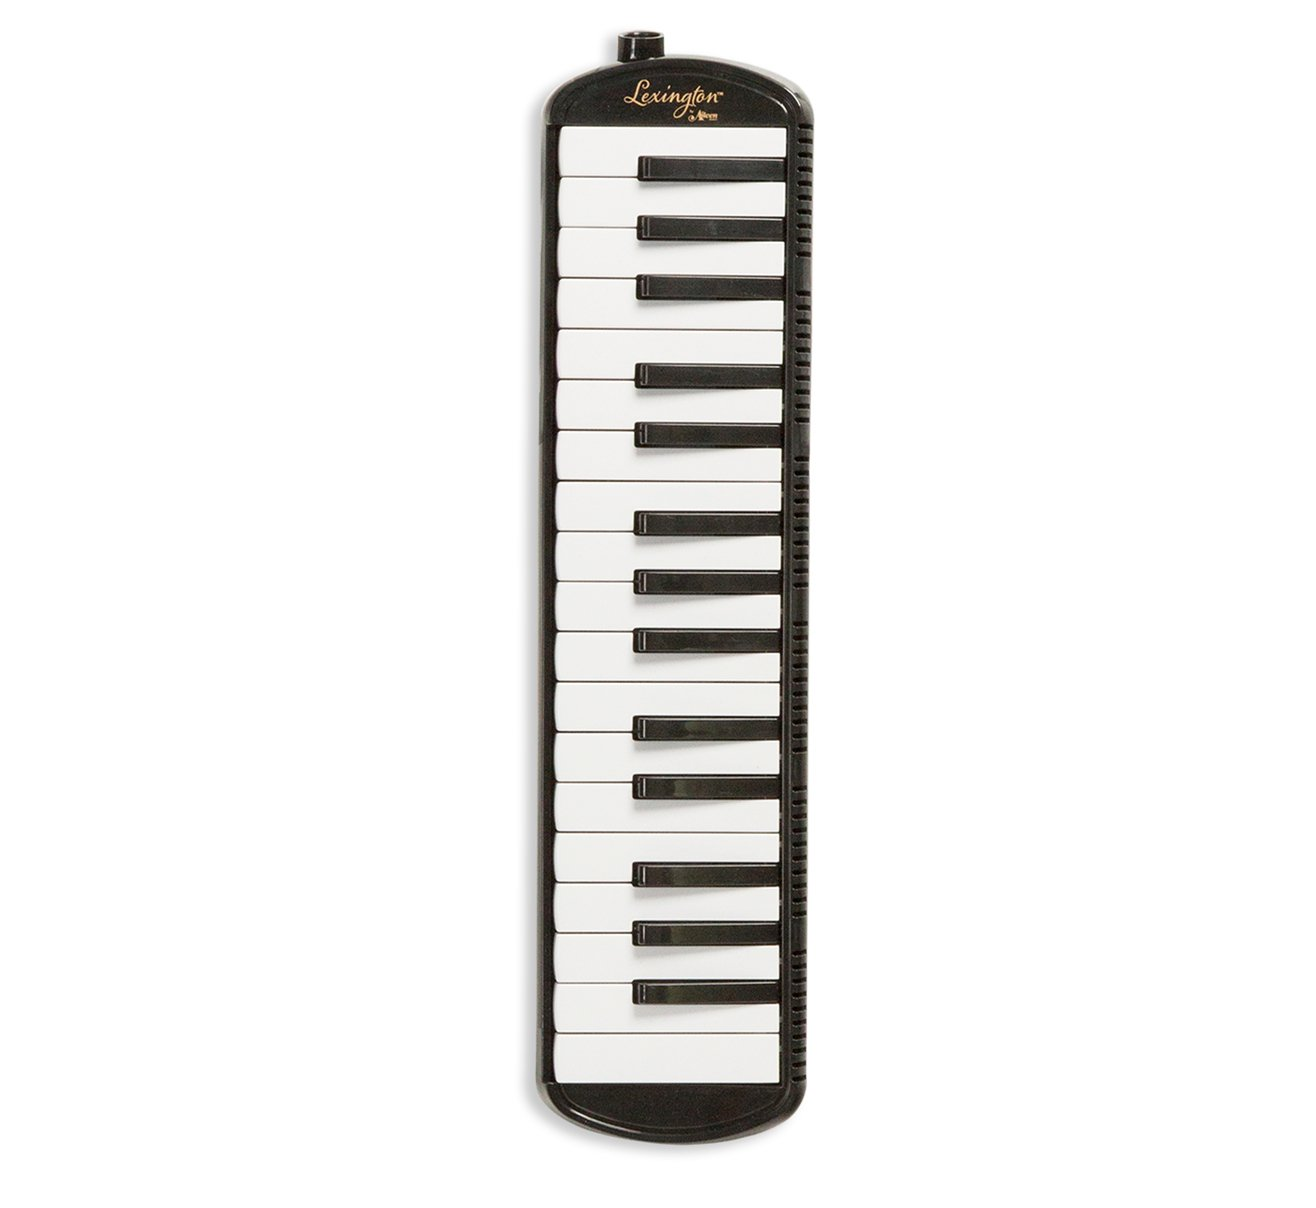 32 Piano Keys Melodica Made of Bronze Base and Reed, Package Includes 1 Carrying Case,1 Short, 2 Long Mouthpieces by Aileen (Image #7)